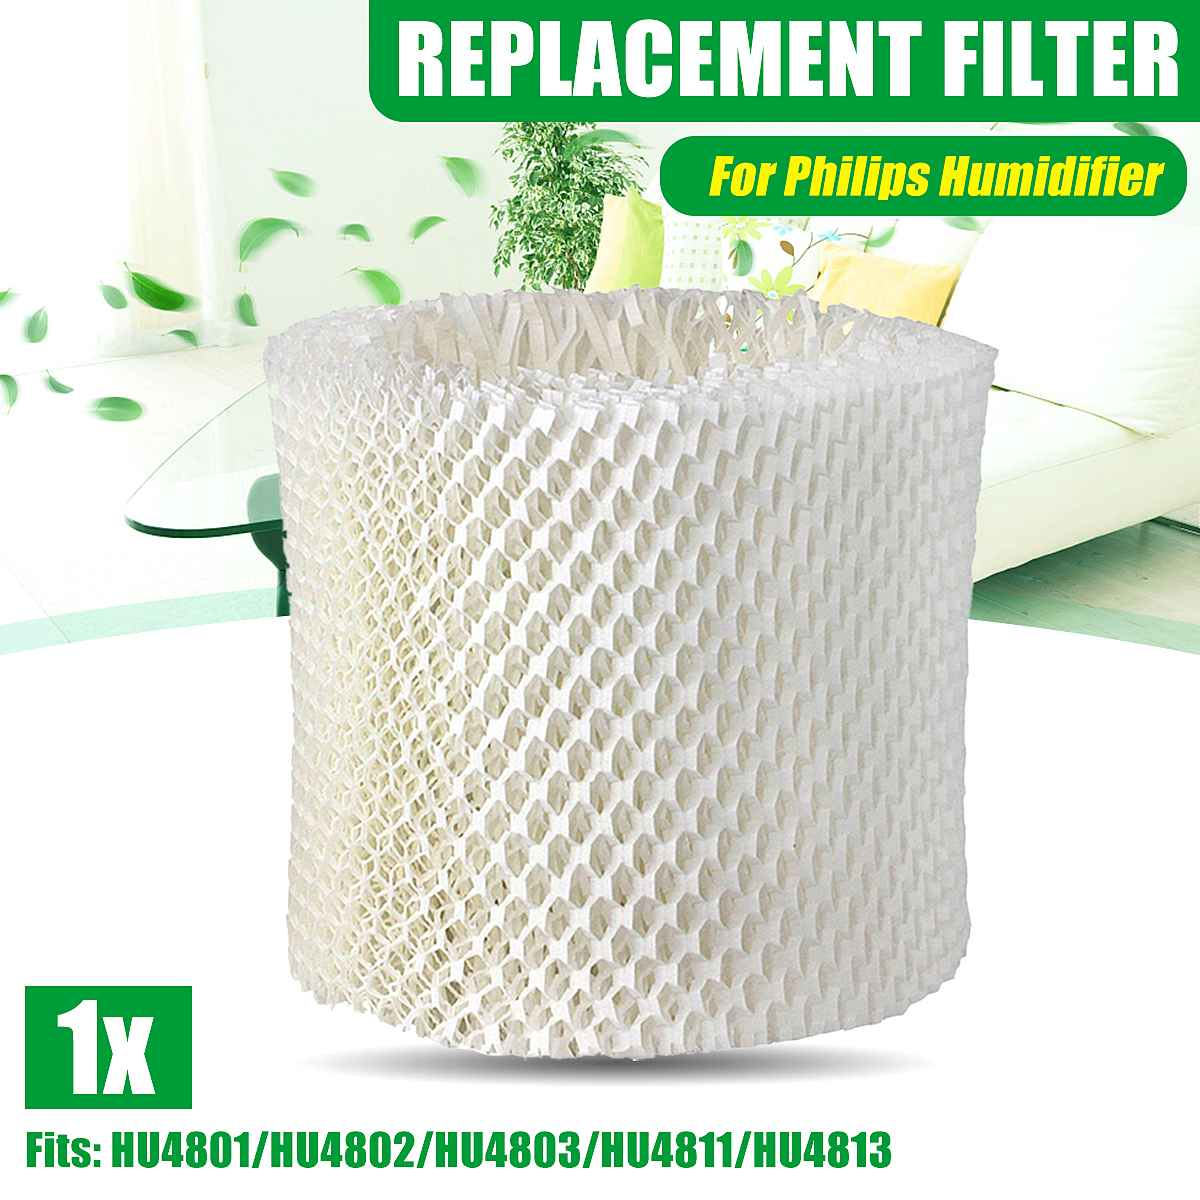 1Pcs Air Humidifier Filter Adsorb Bacteria And Scale Replacement Parts Filter Net For Philips HU4801 HU4802 HU4803 HU4811 HU4813